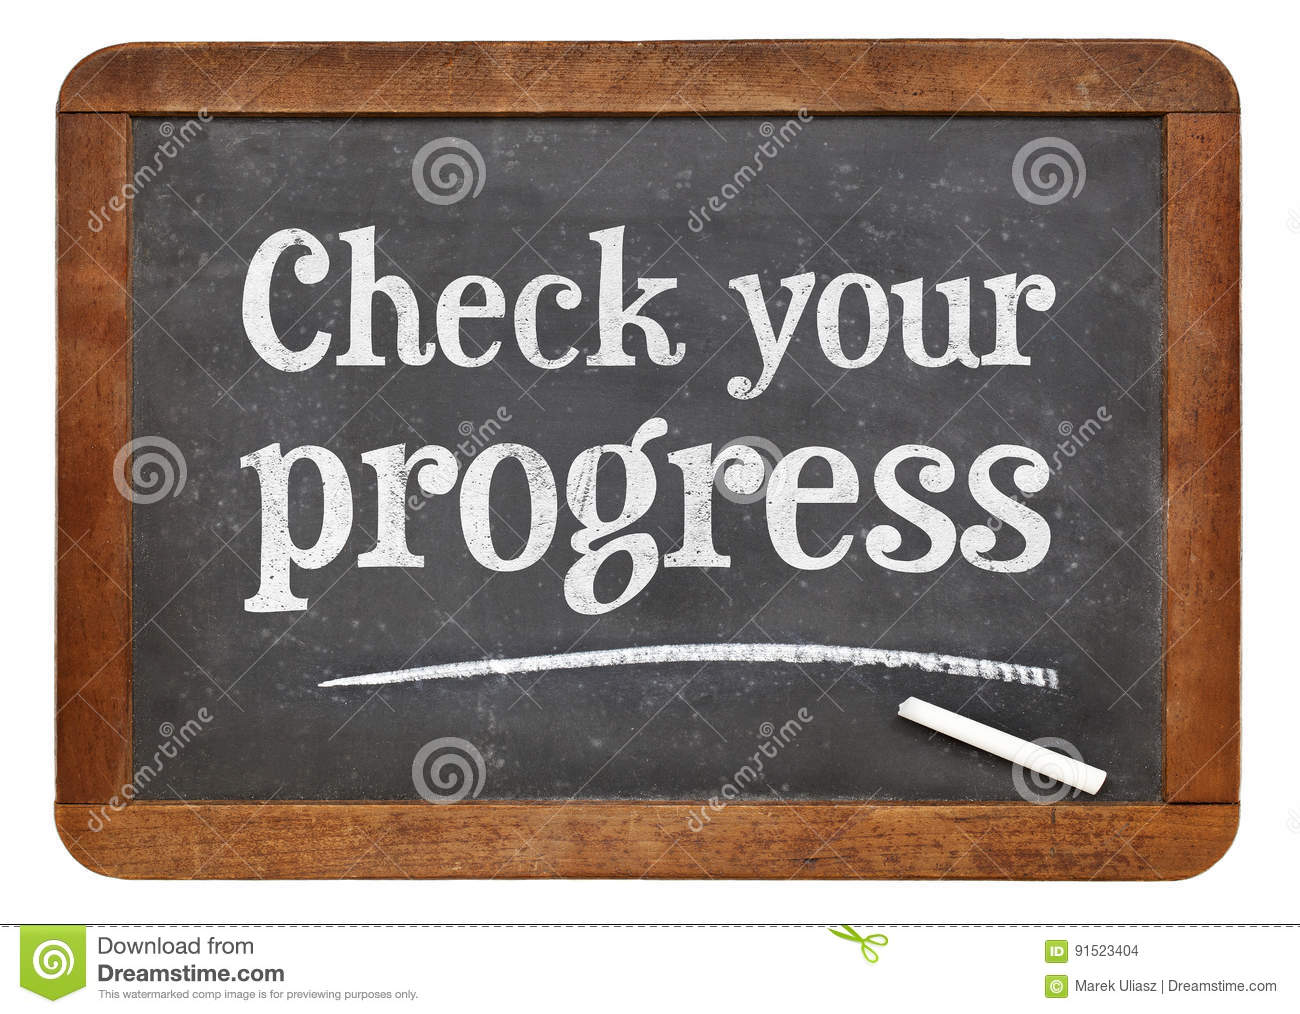 Check Your Progress Blackboard Sign Stock Photo - Image of